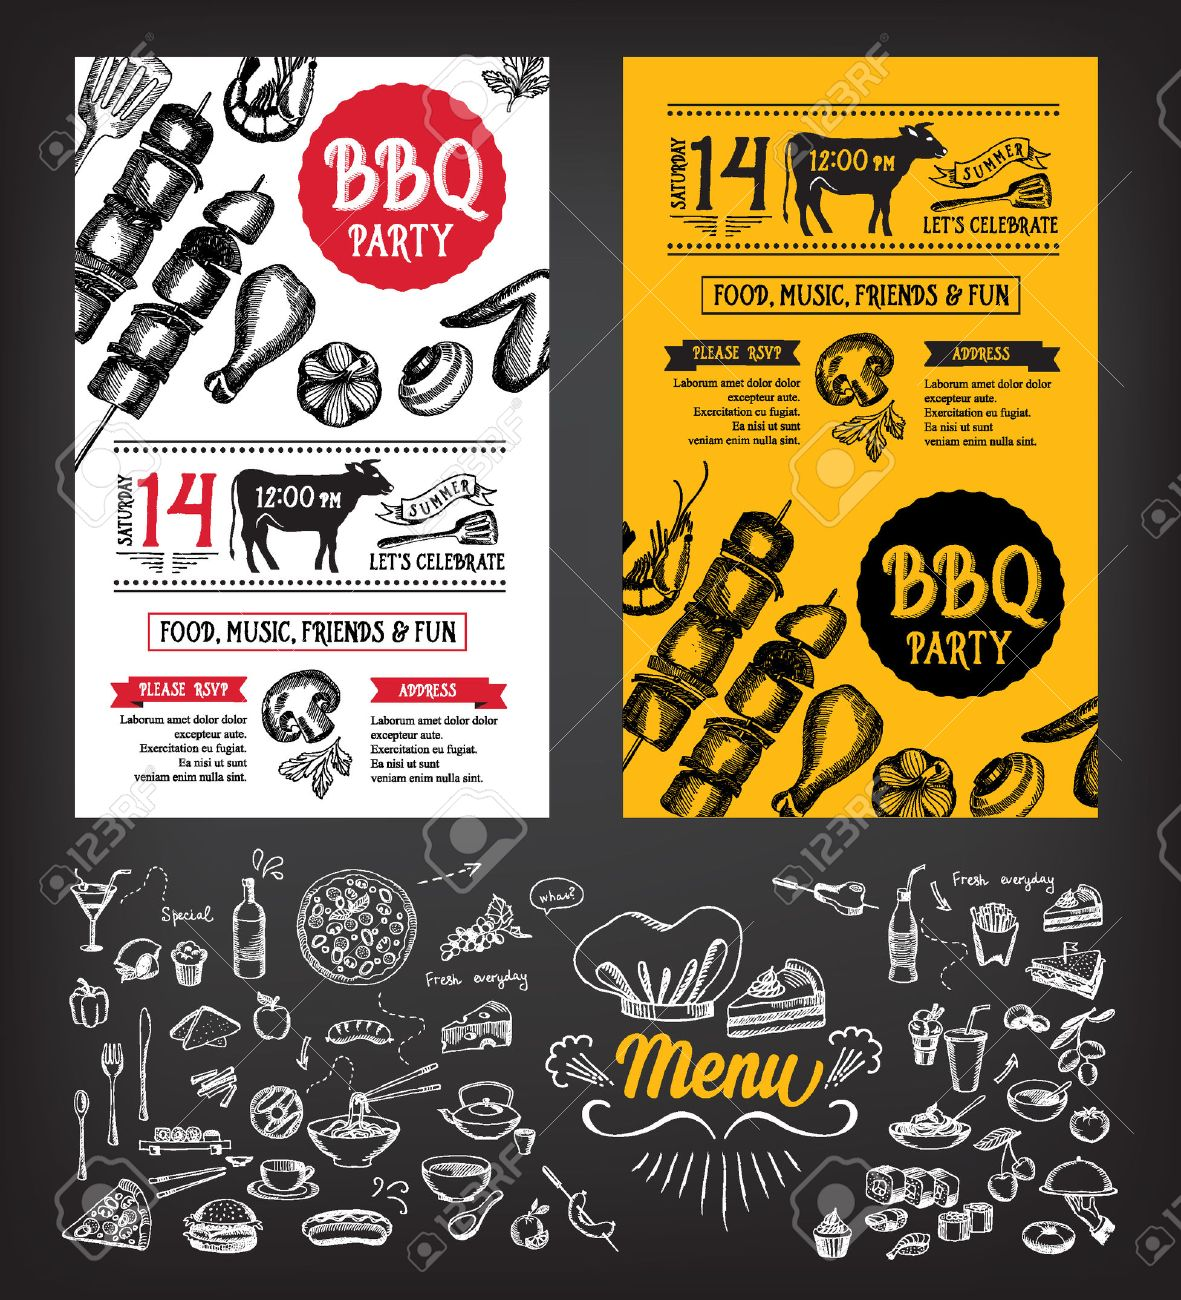 Barbecue Party Invitation BBQ Template Menu Design Food Flyer – Party Invitation Flyer